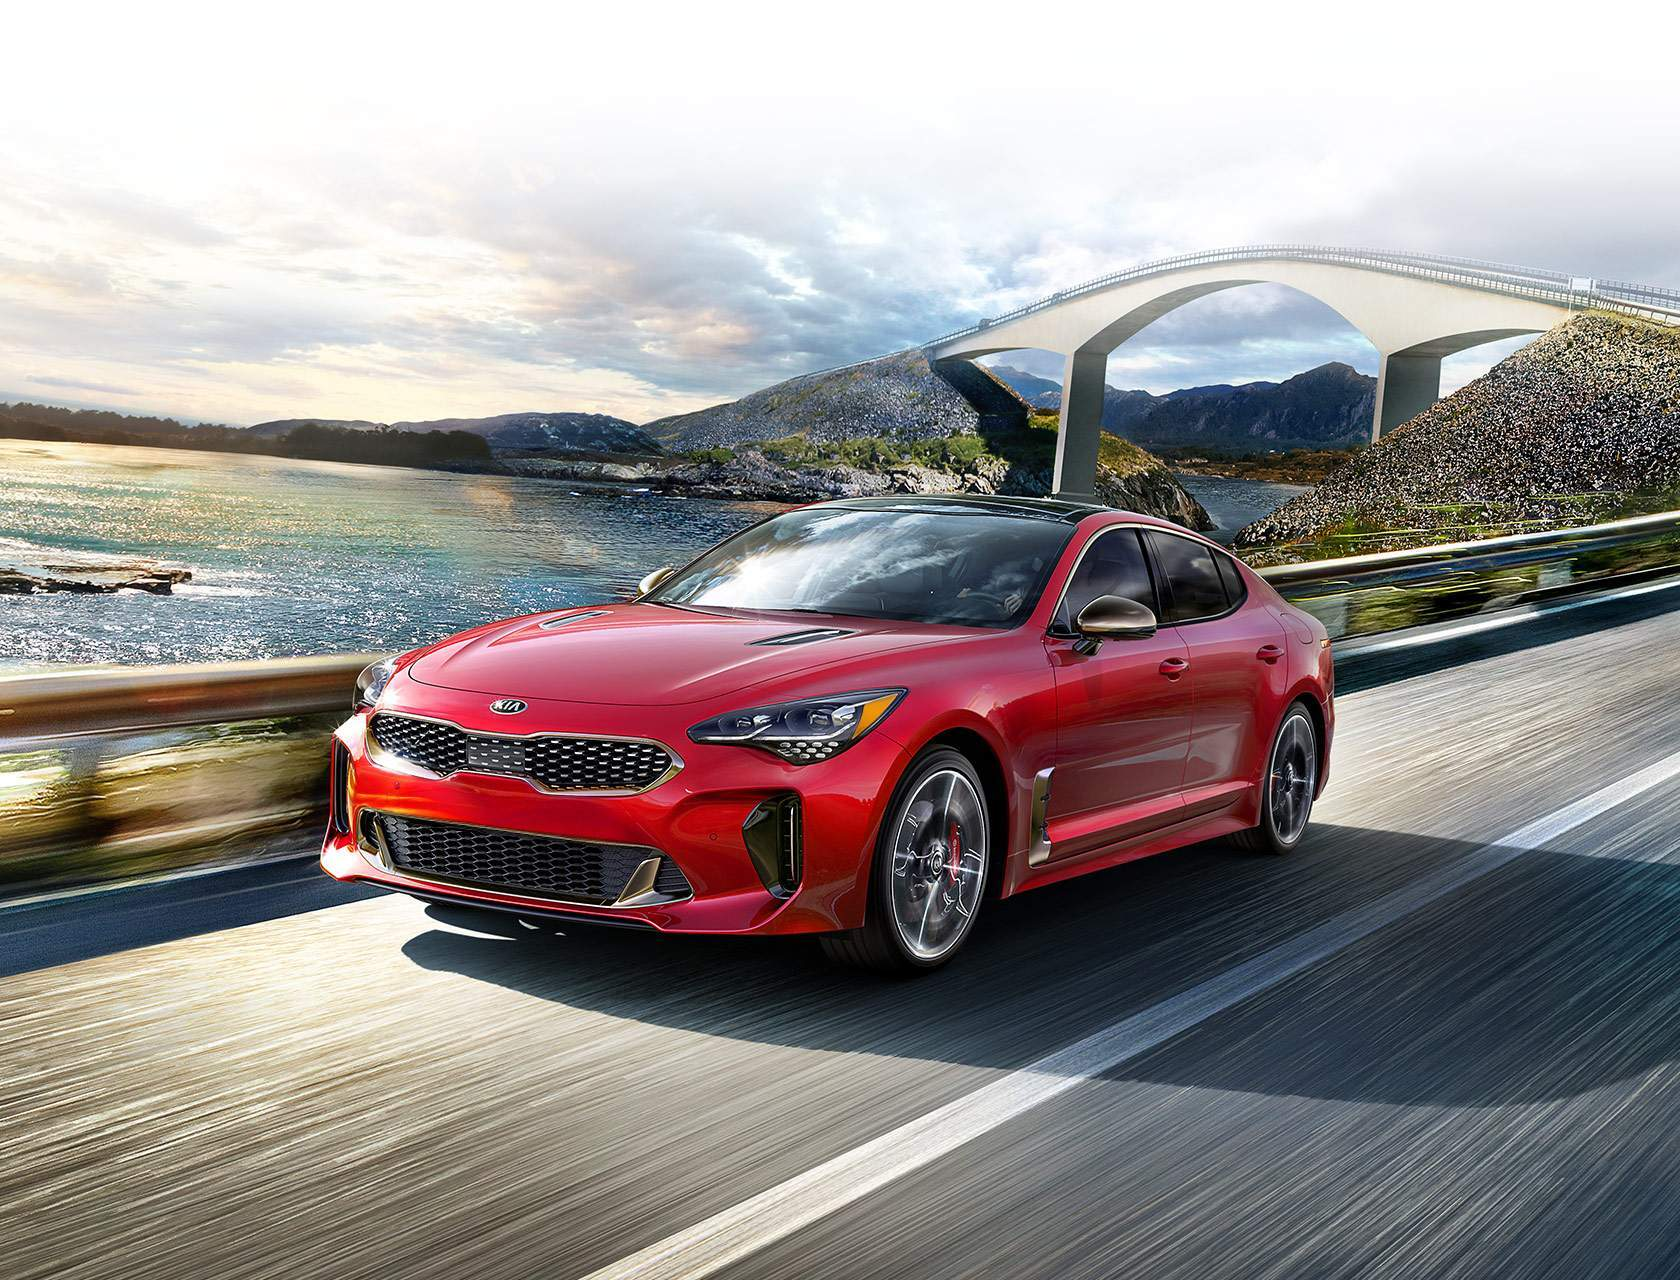 2018 Kia Stinger in Hackettstown, NJ